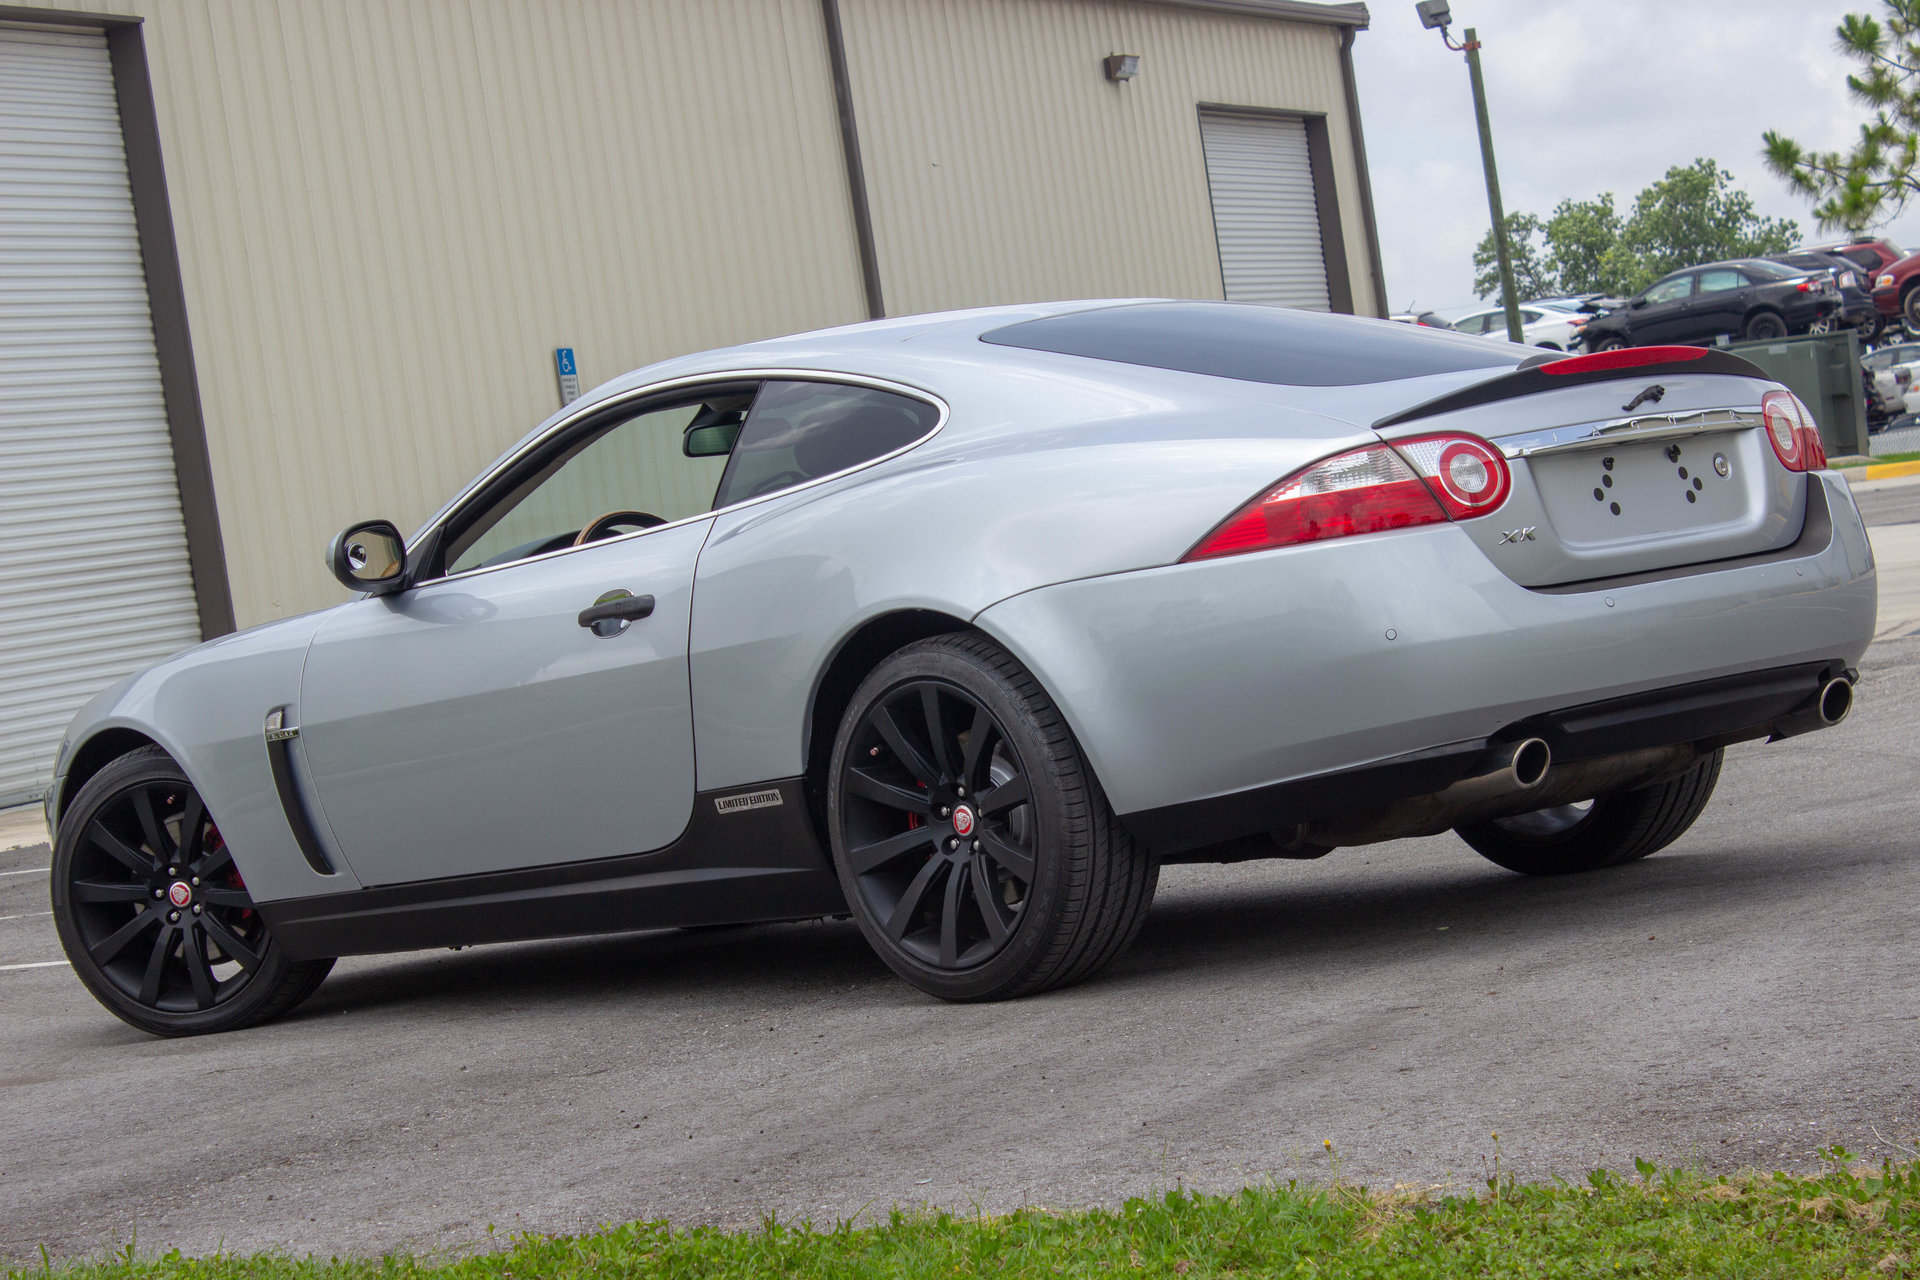 2007 Jaguar XK | Classic Cars & Used Cars For Sale in ...